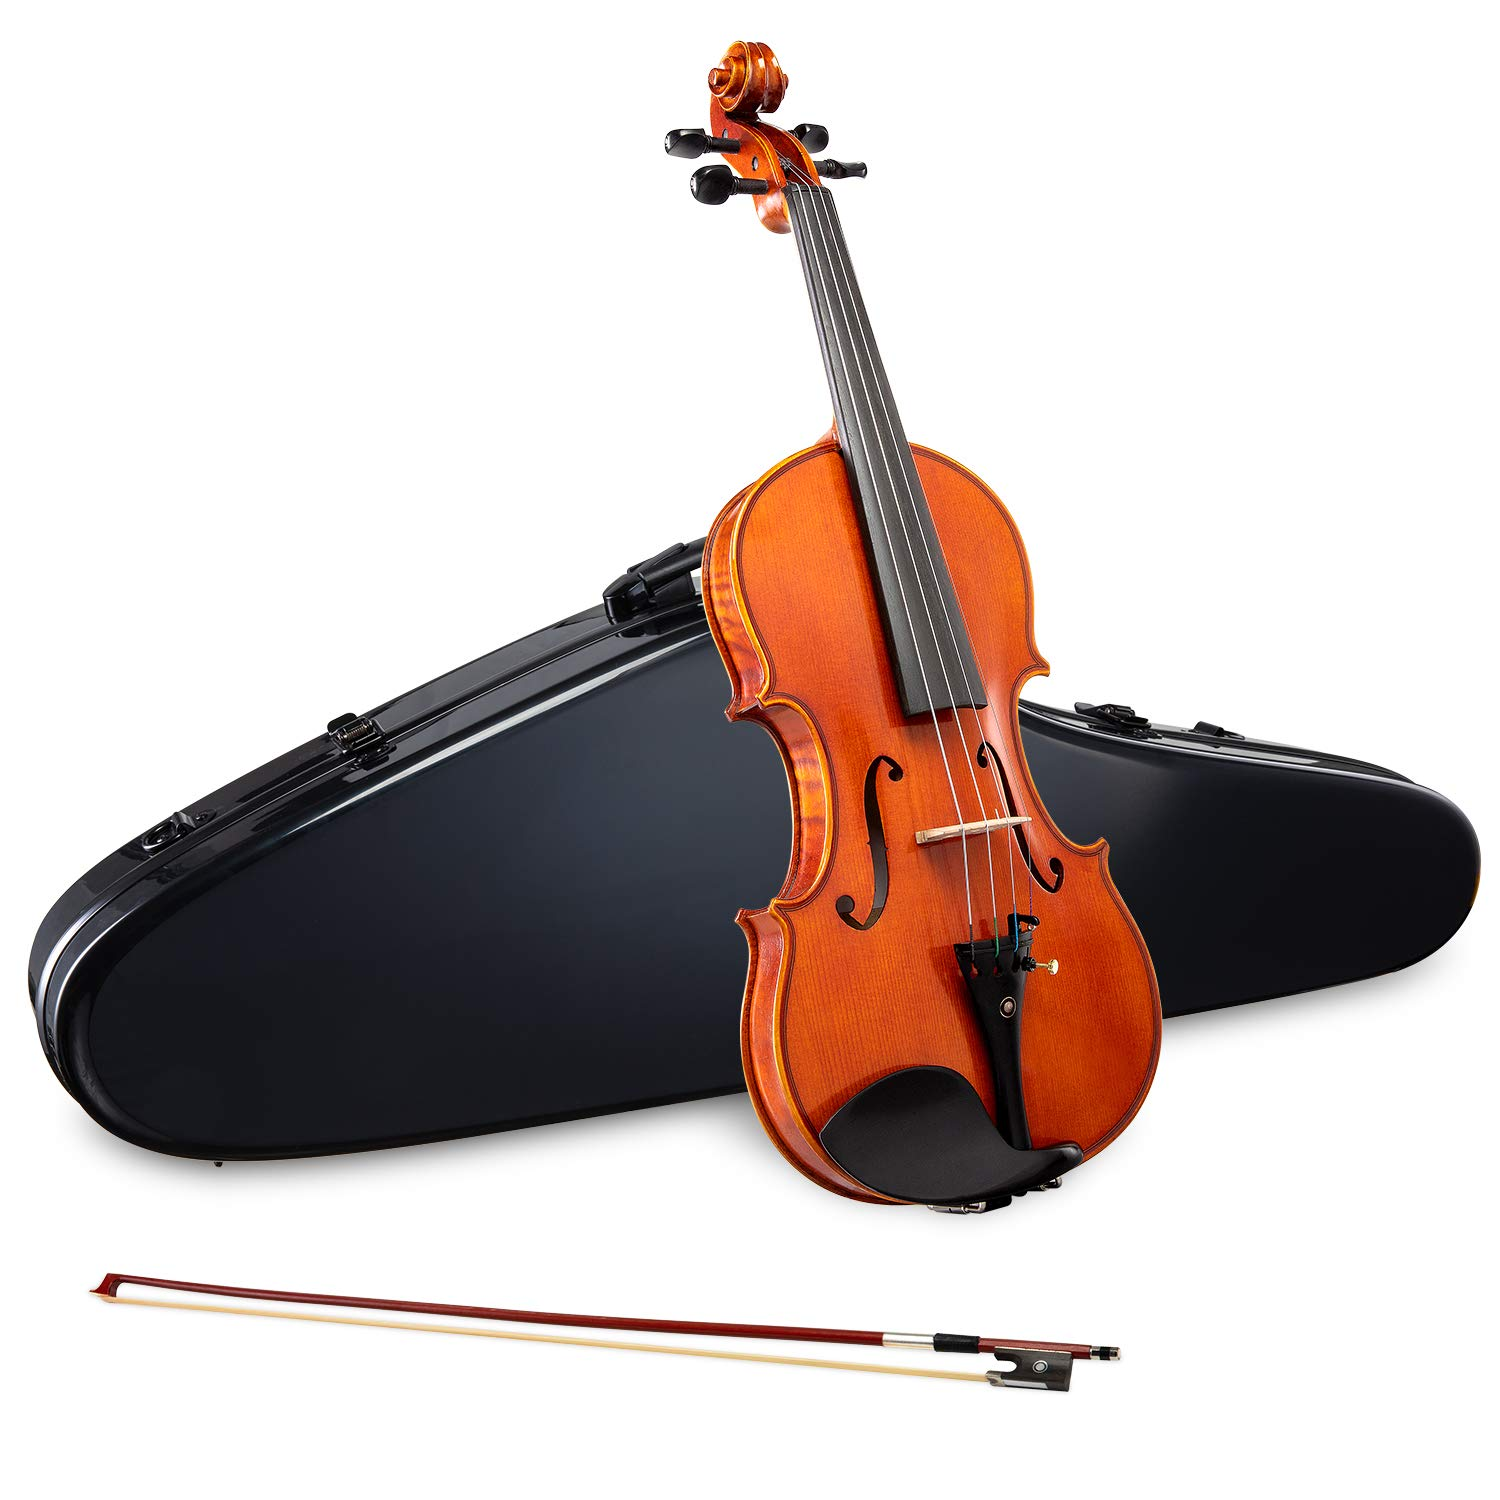 LyxJam Premium Full Size Violin Set - 4/4 Maple/Spruce Violin Kit for Beginner & Intermediate Players, Rosin, Black Hard Carry Case w/Hygrometer & Strap